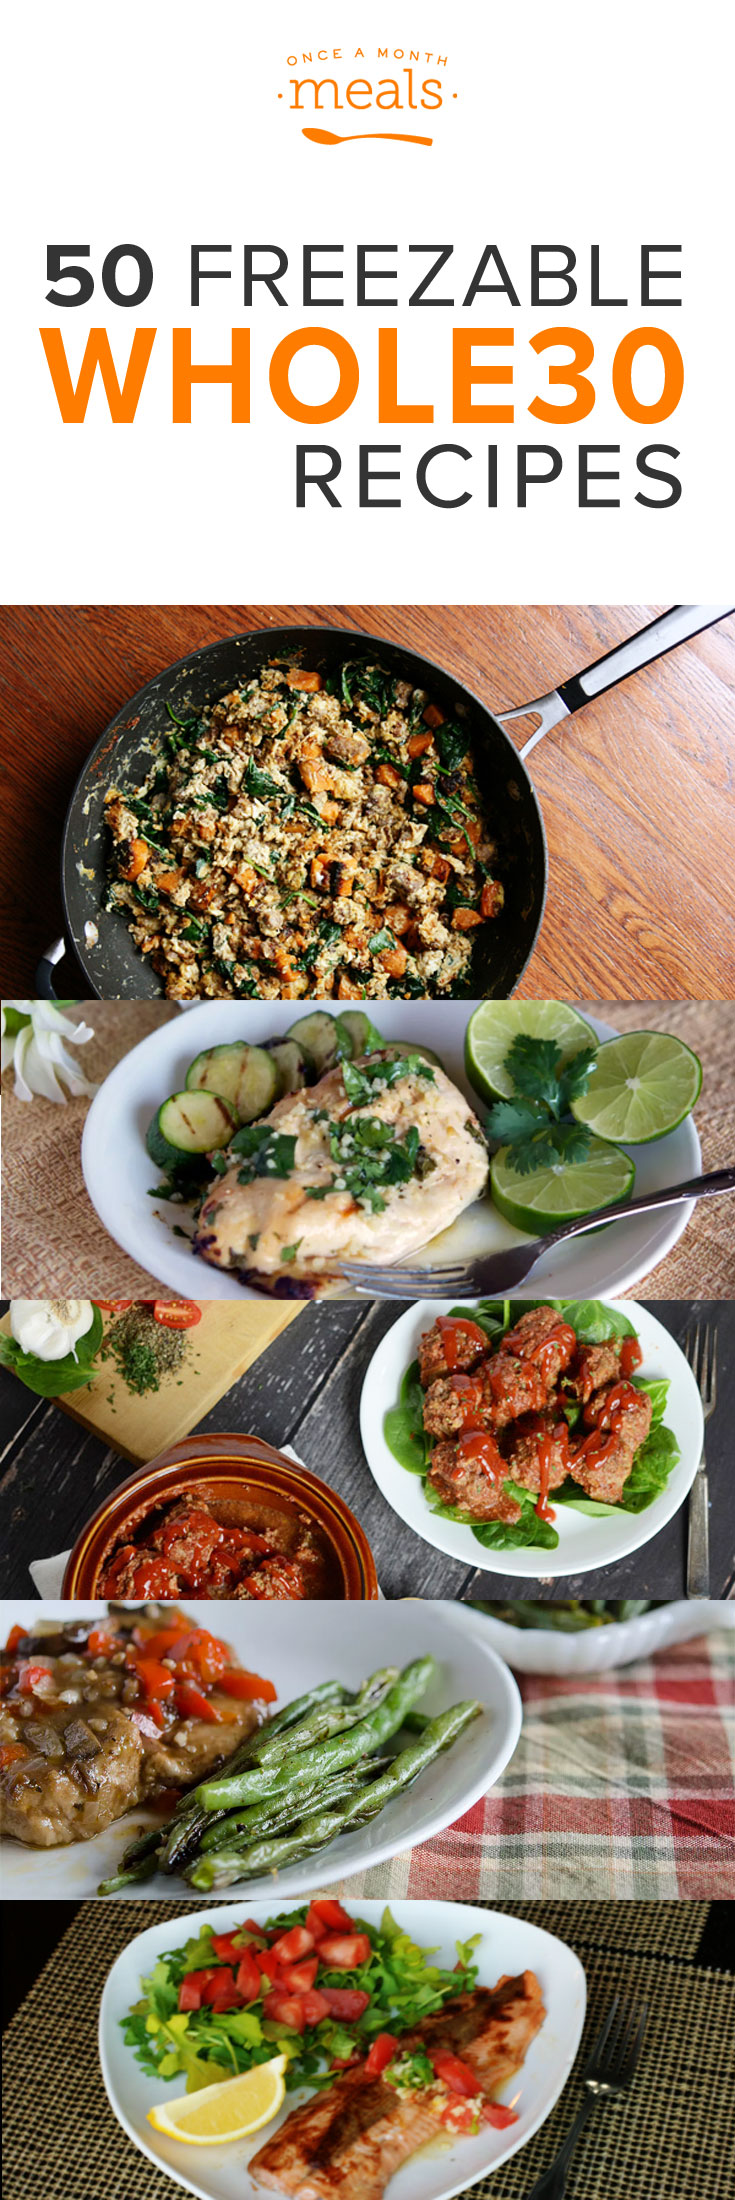 We have compiled FIFTY Whole30 compliant recipes from which to choose, making it simple for you to get started, keep going, or finish up - wherever you are on the journey.